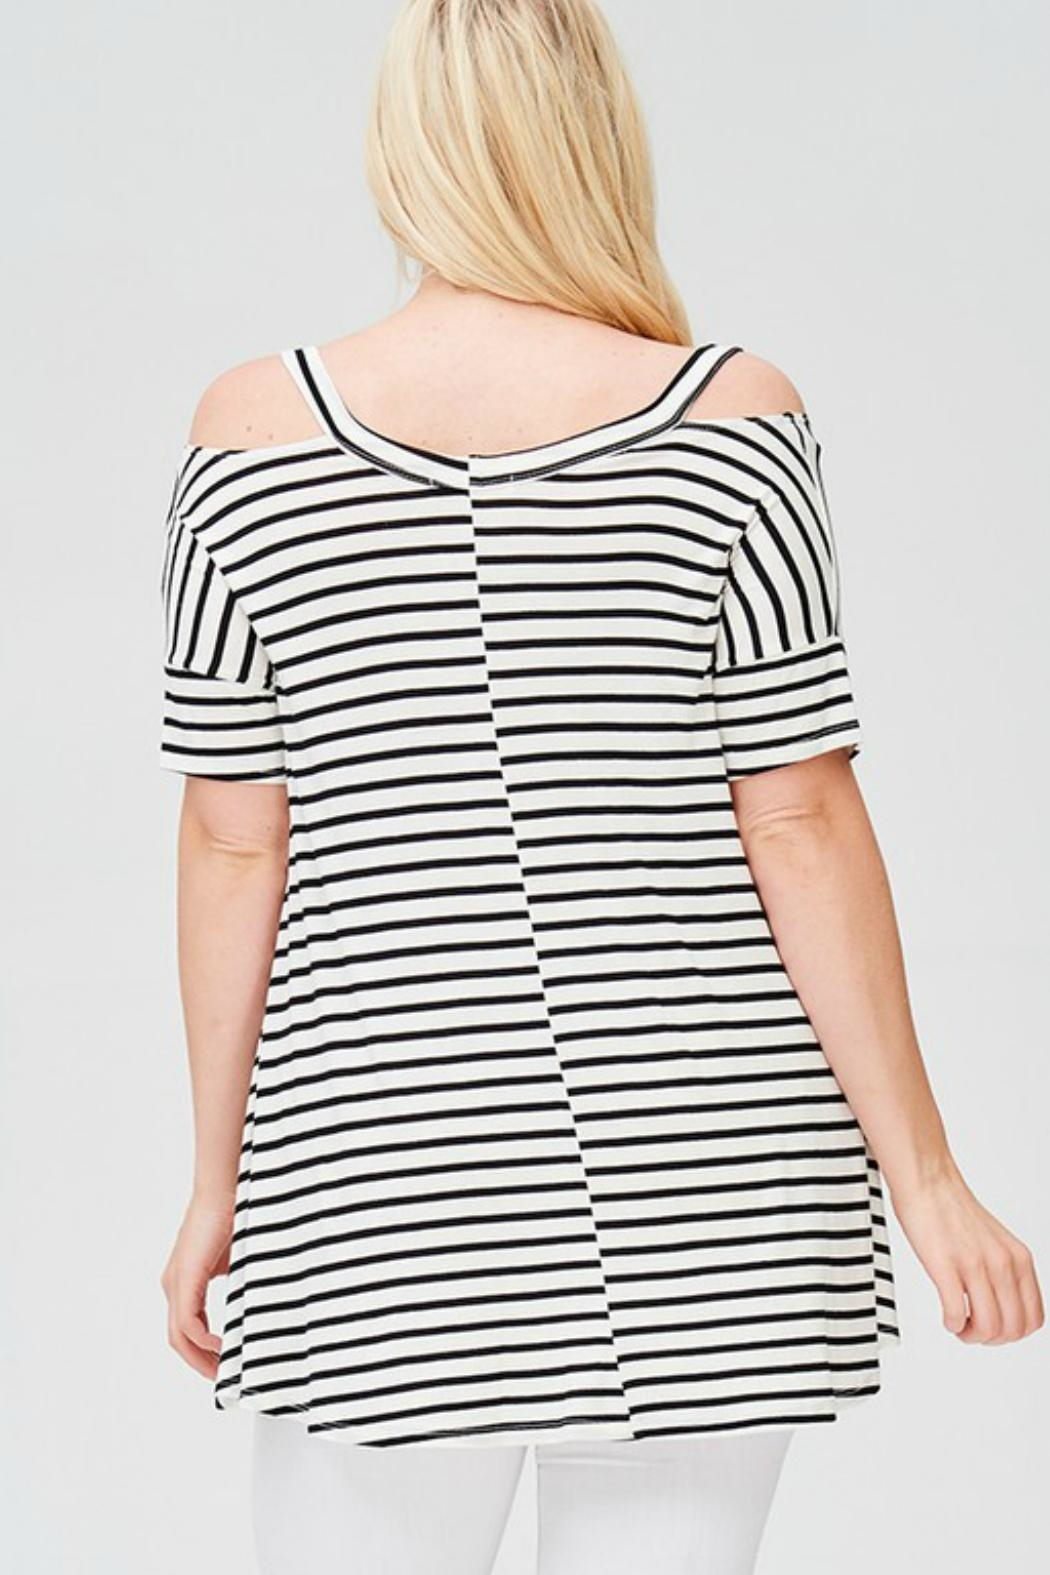 Faith Apparel Striped Open-Shoulder Top - Side Cropped Image